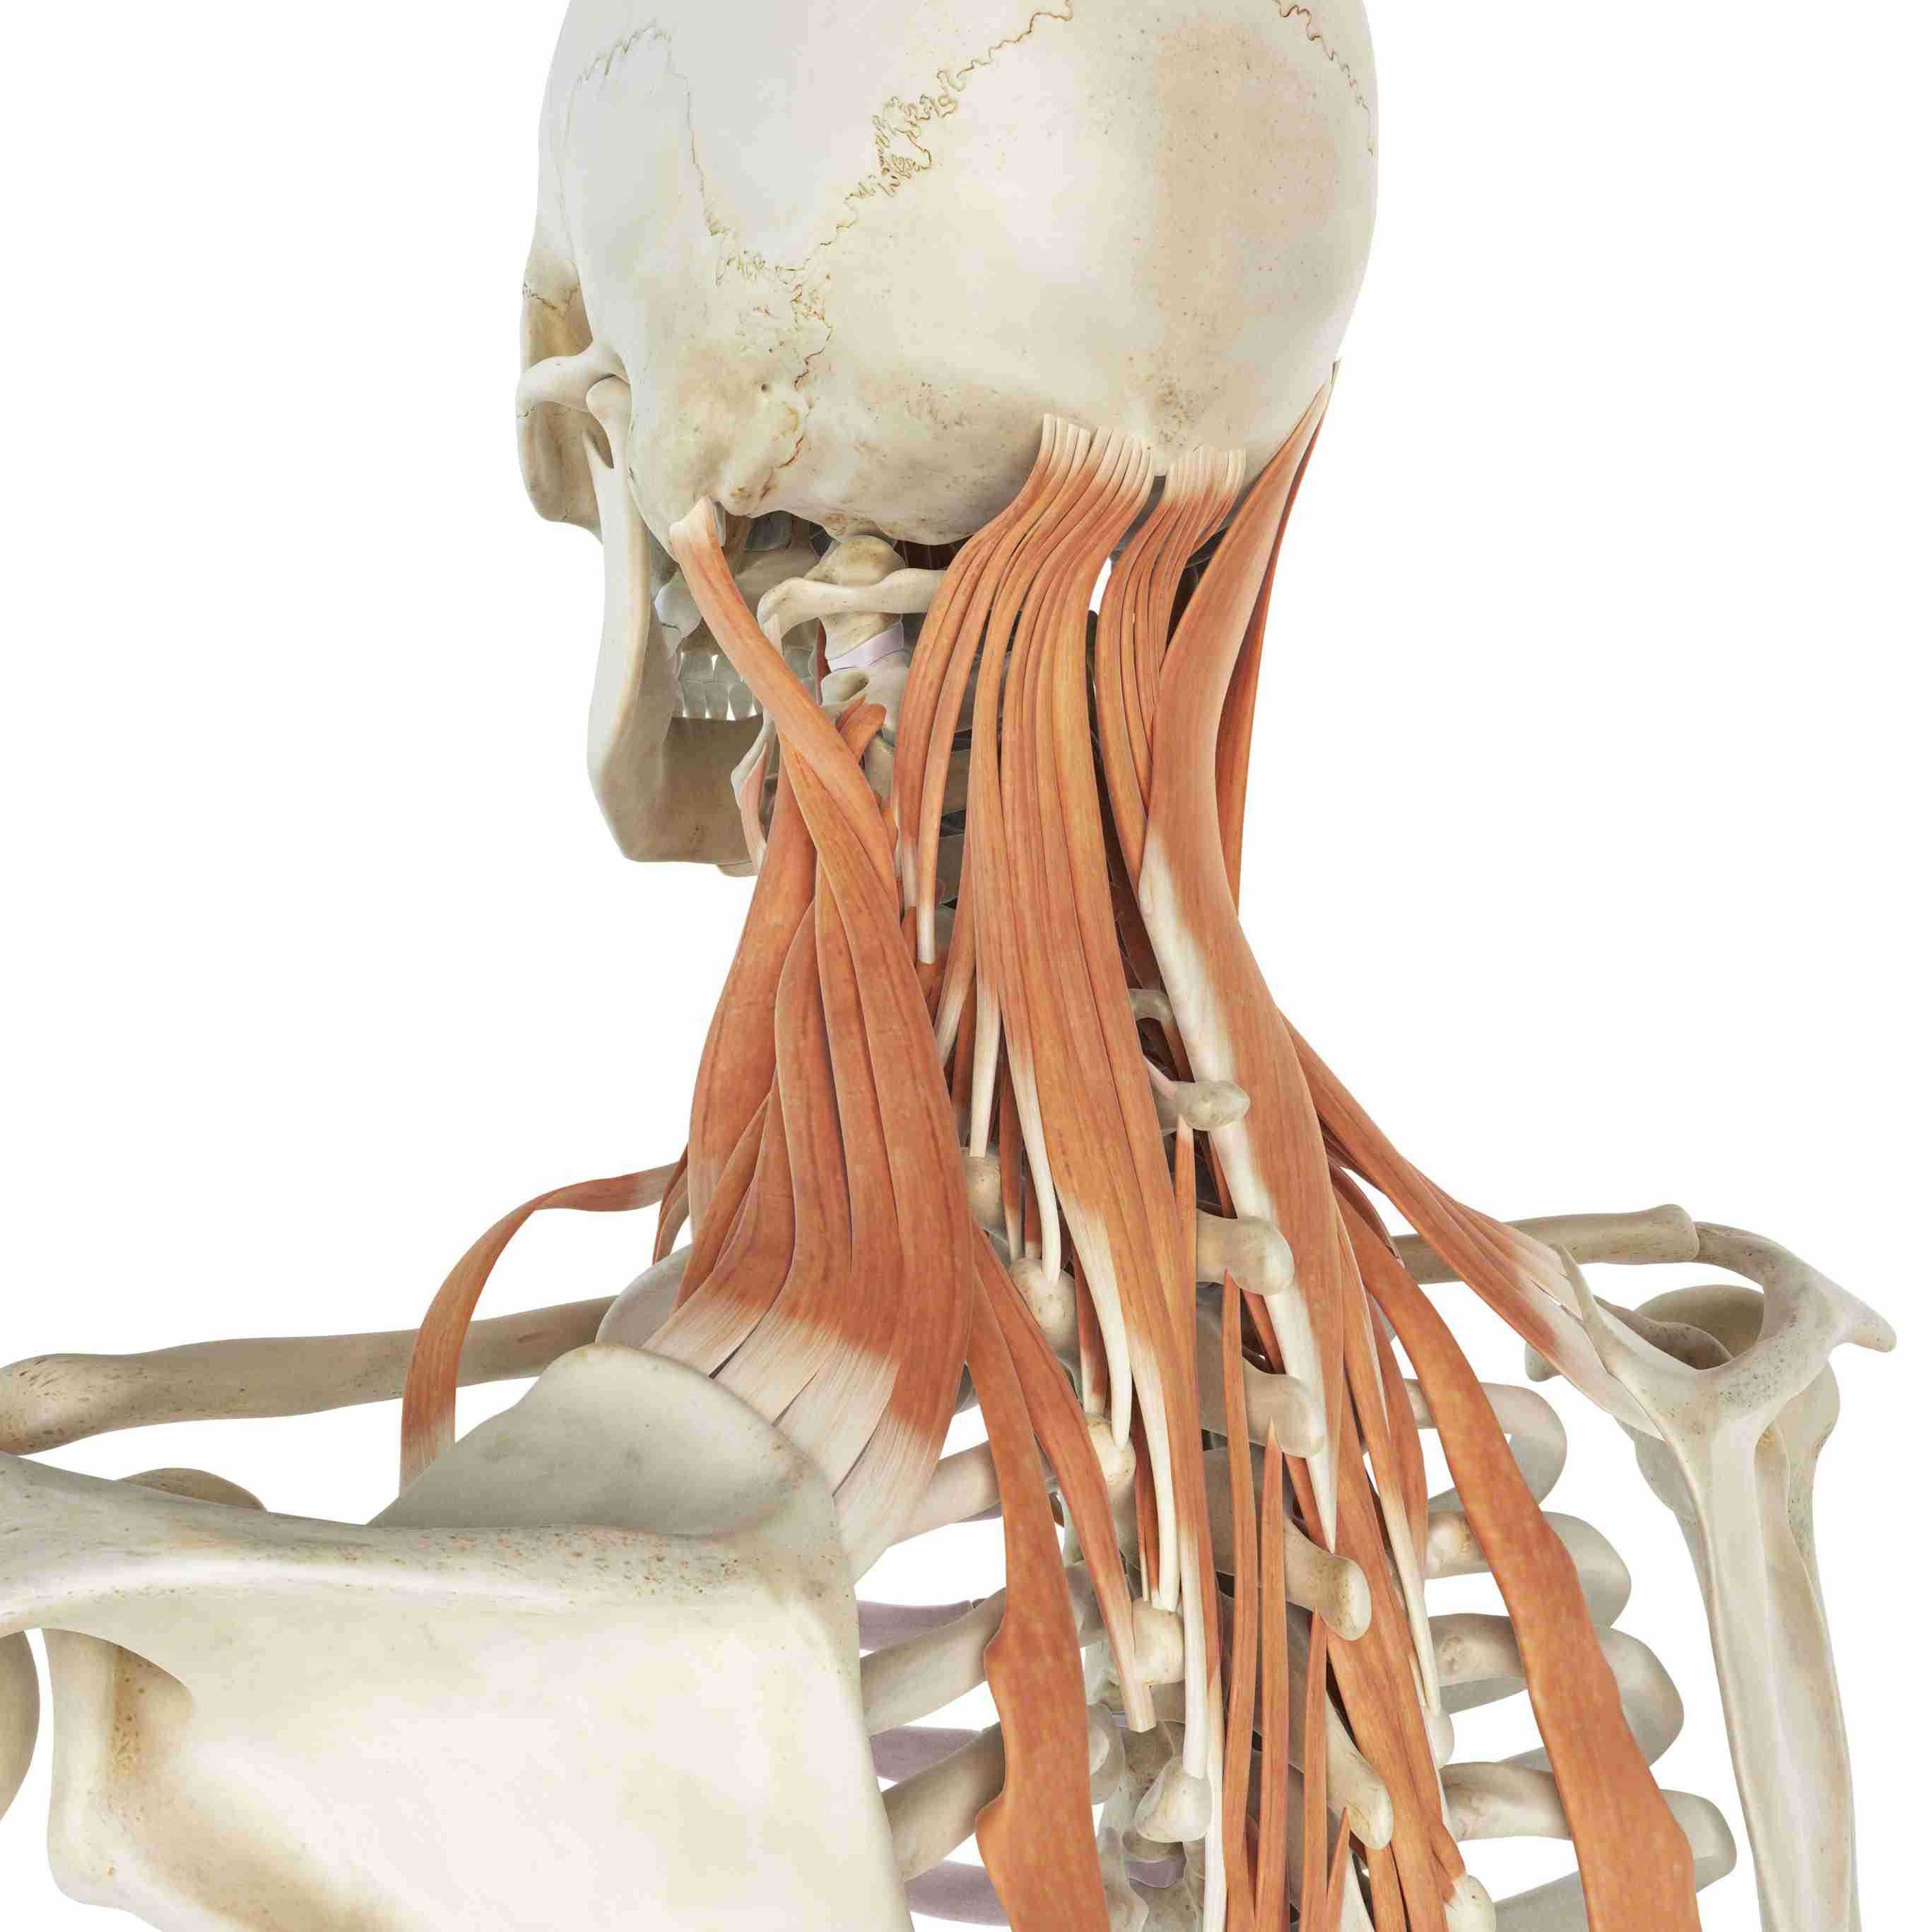 Levator Scapula Muscle And Its Role In Pain And Posture